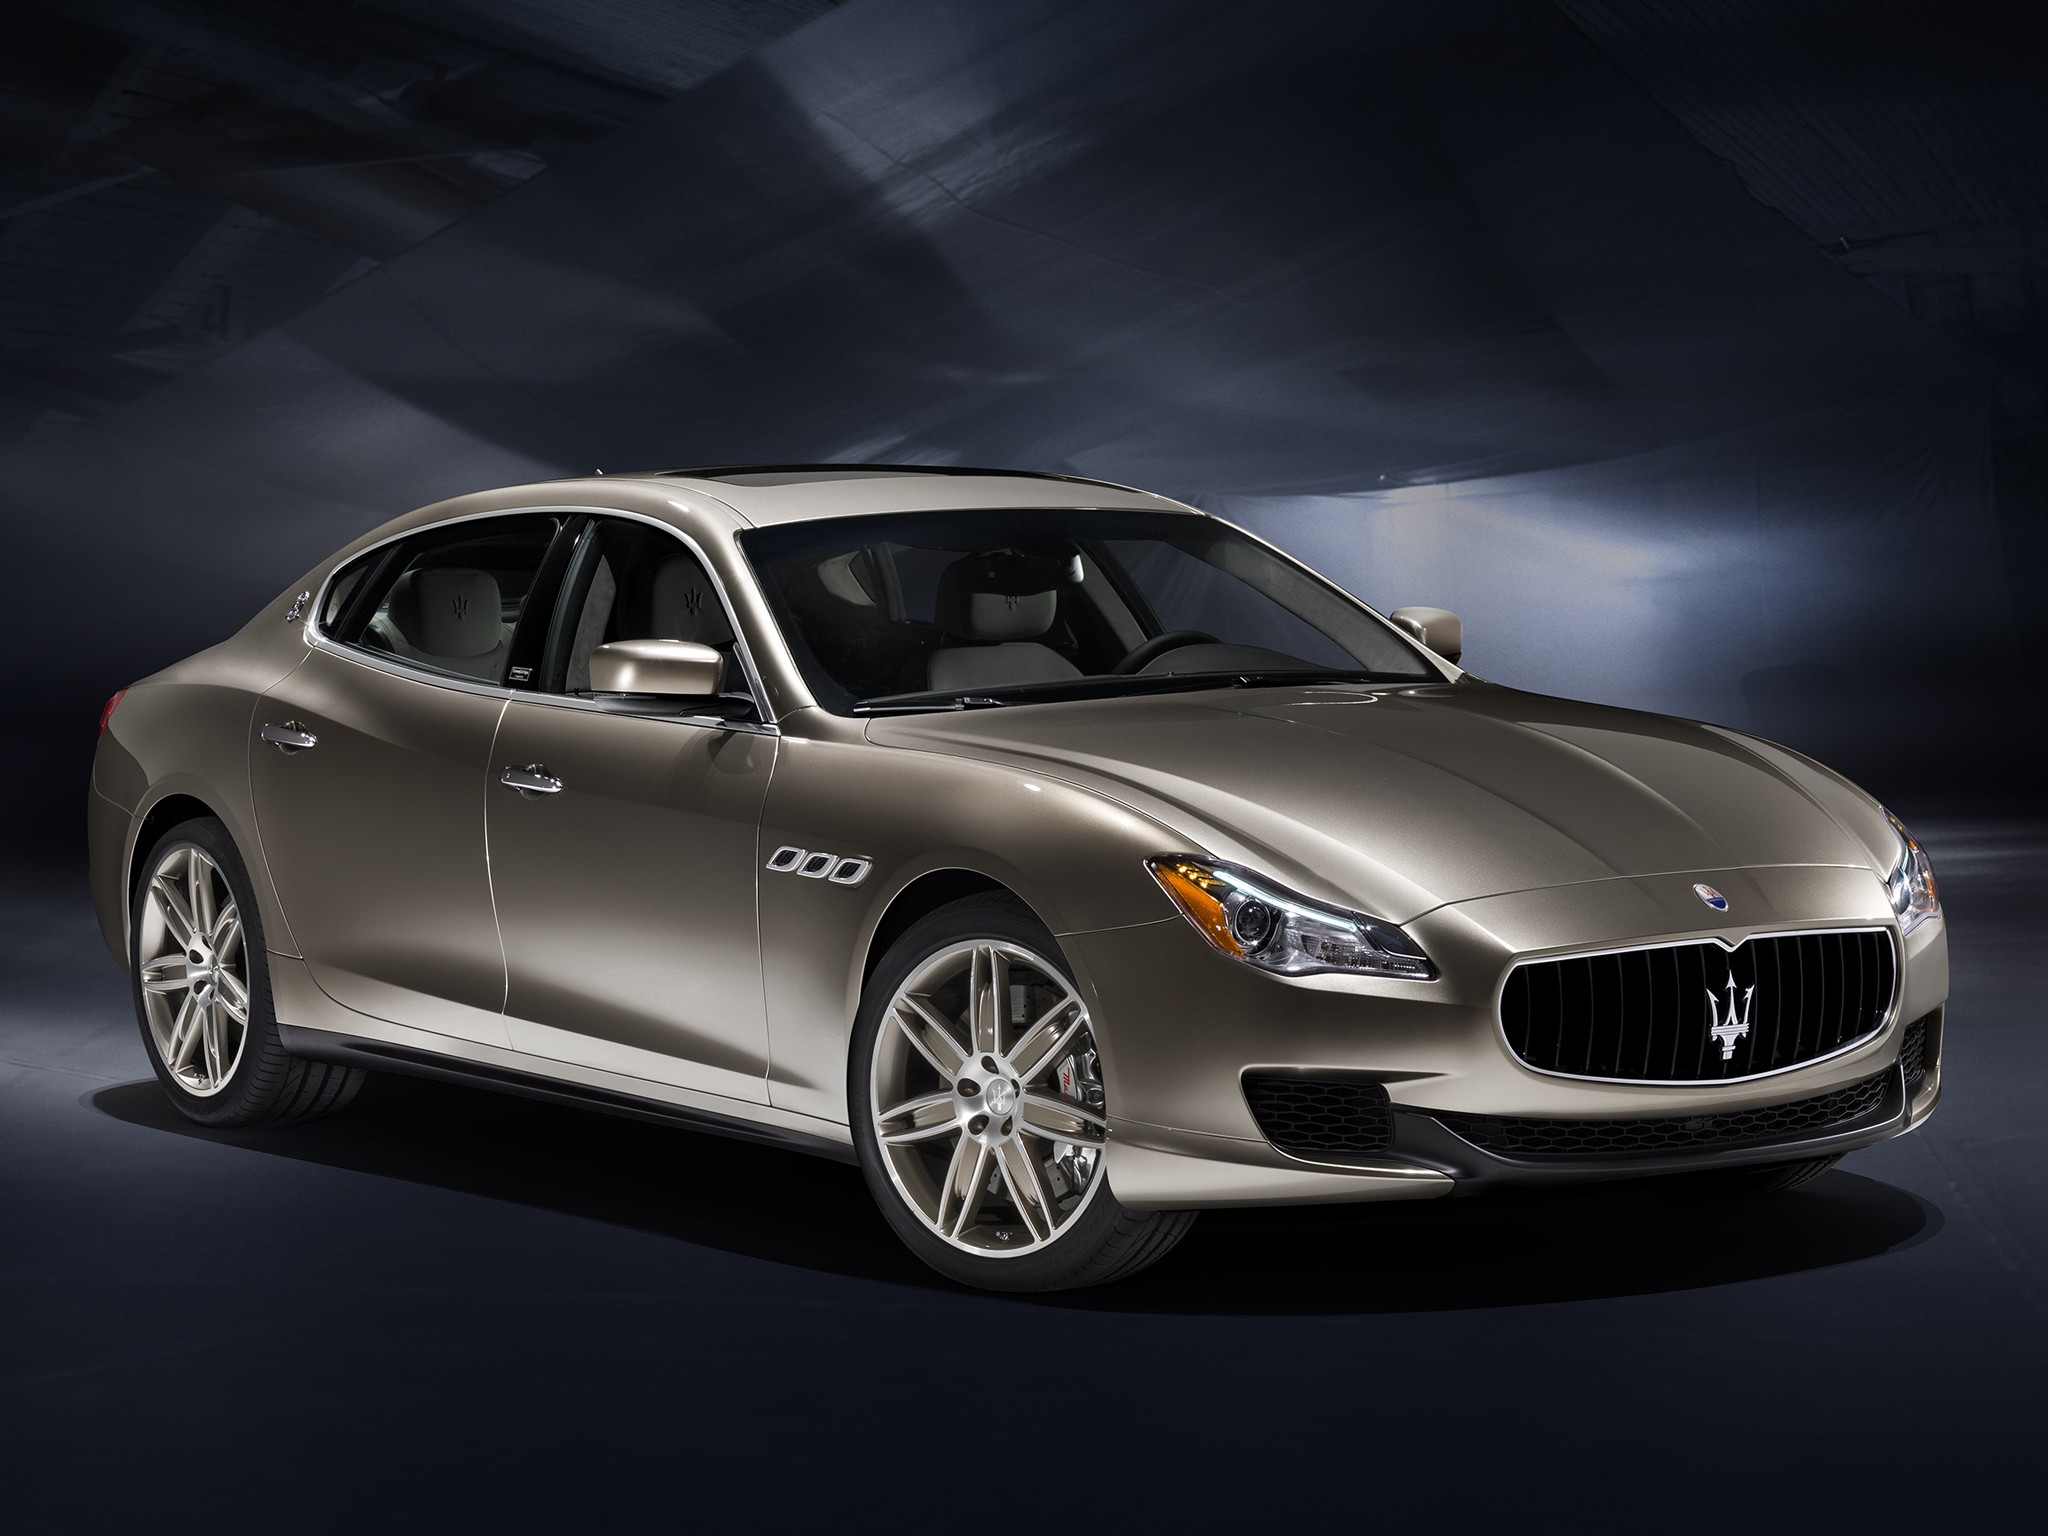 maserati quattroporte vi 2013 2014 2015 2016 autoevolution. Black Bedroom Furniture Sets. Home Design Ideas